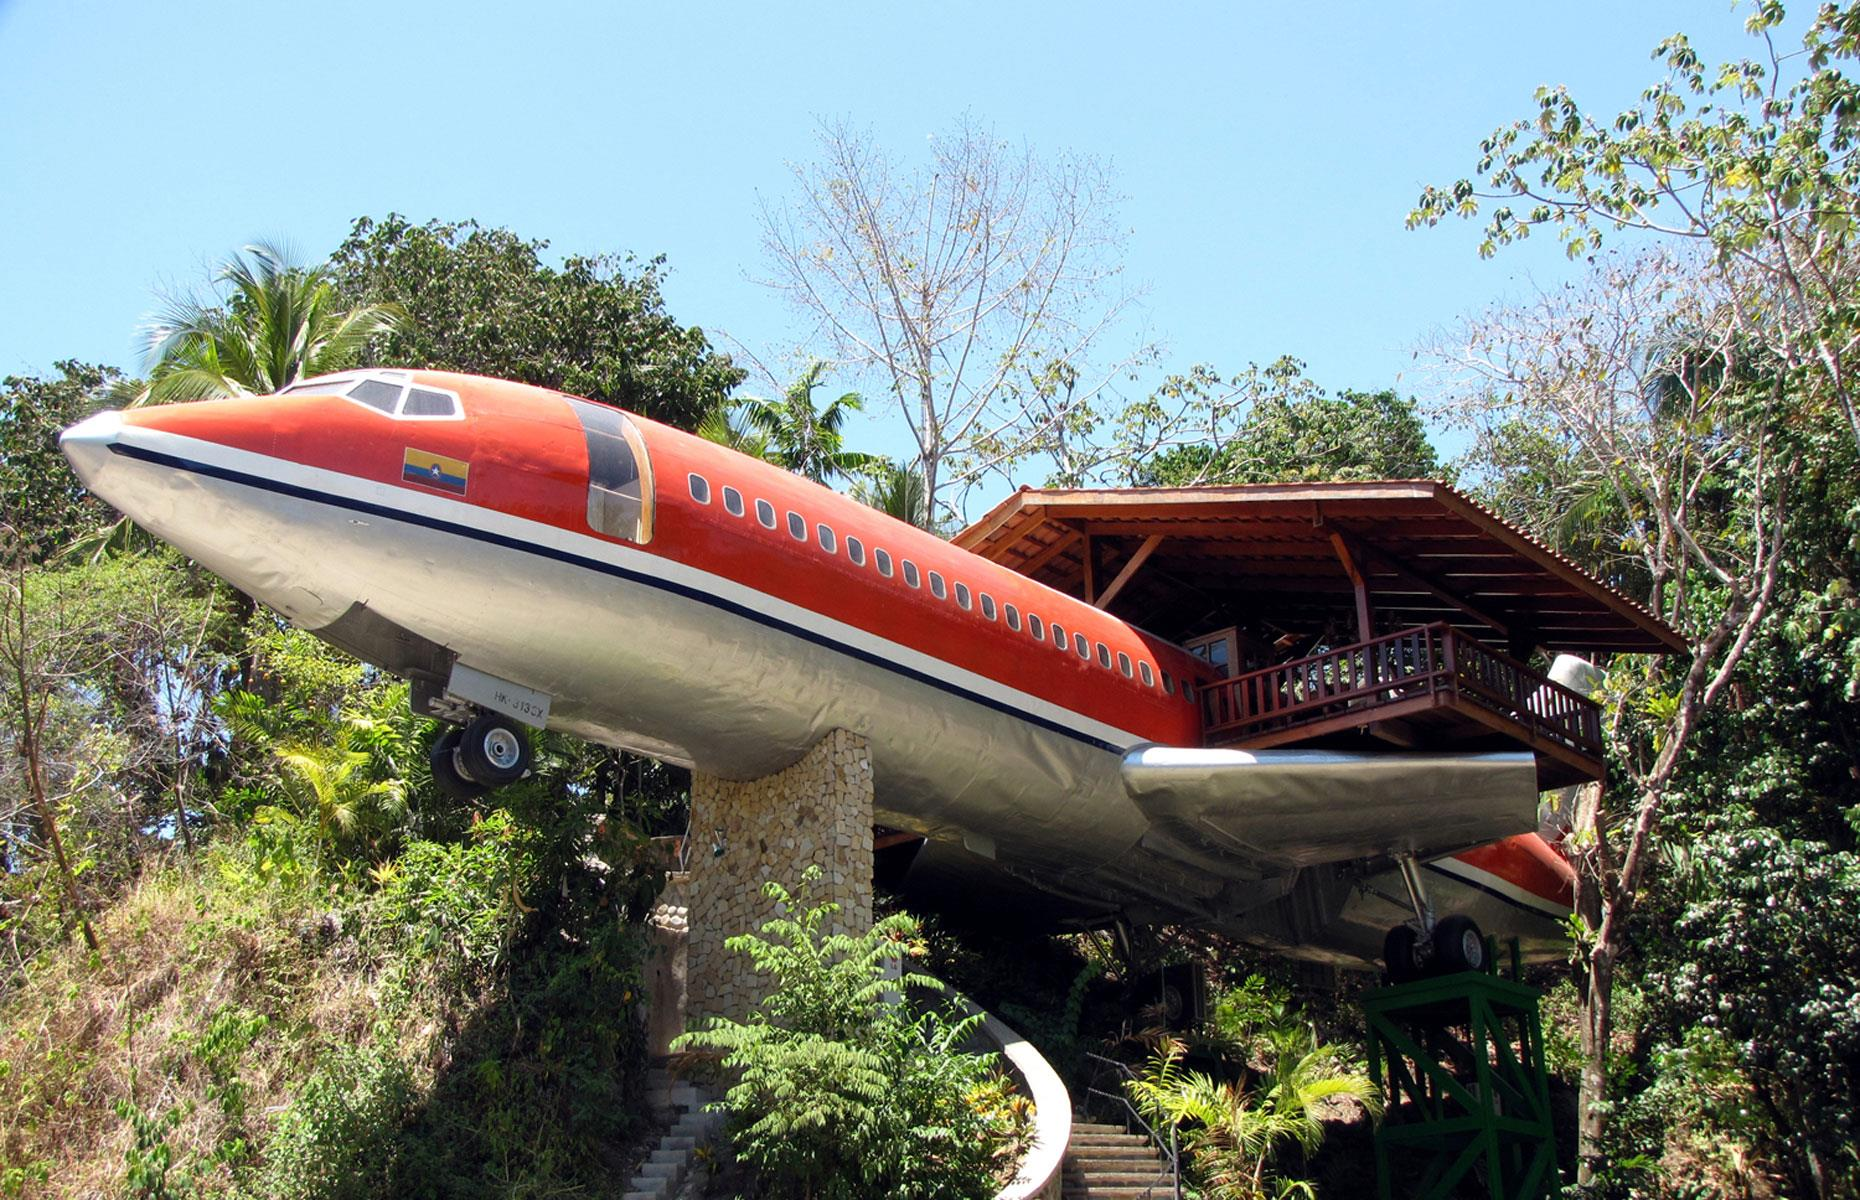 You Can Live In Amazing Aircraft Hotels